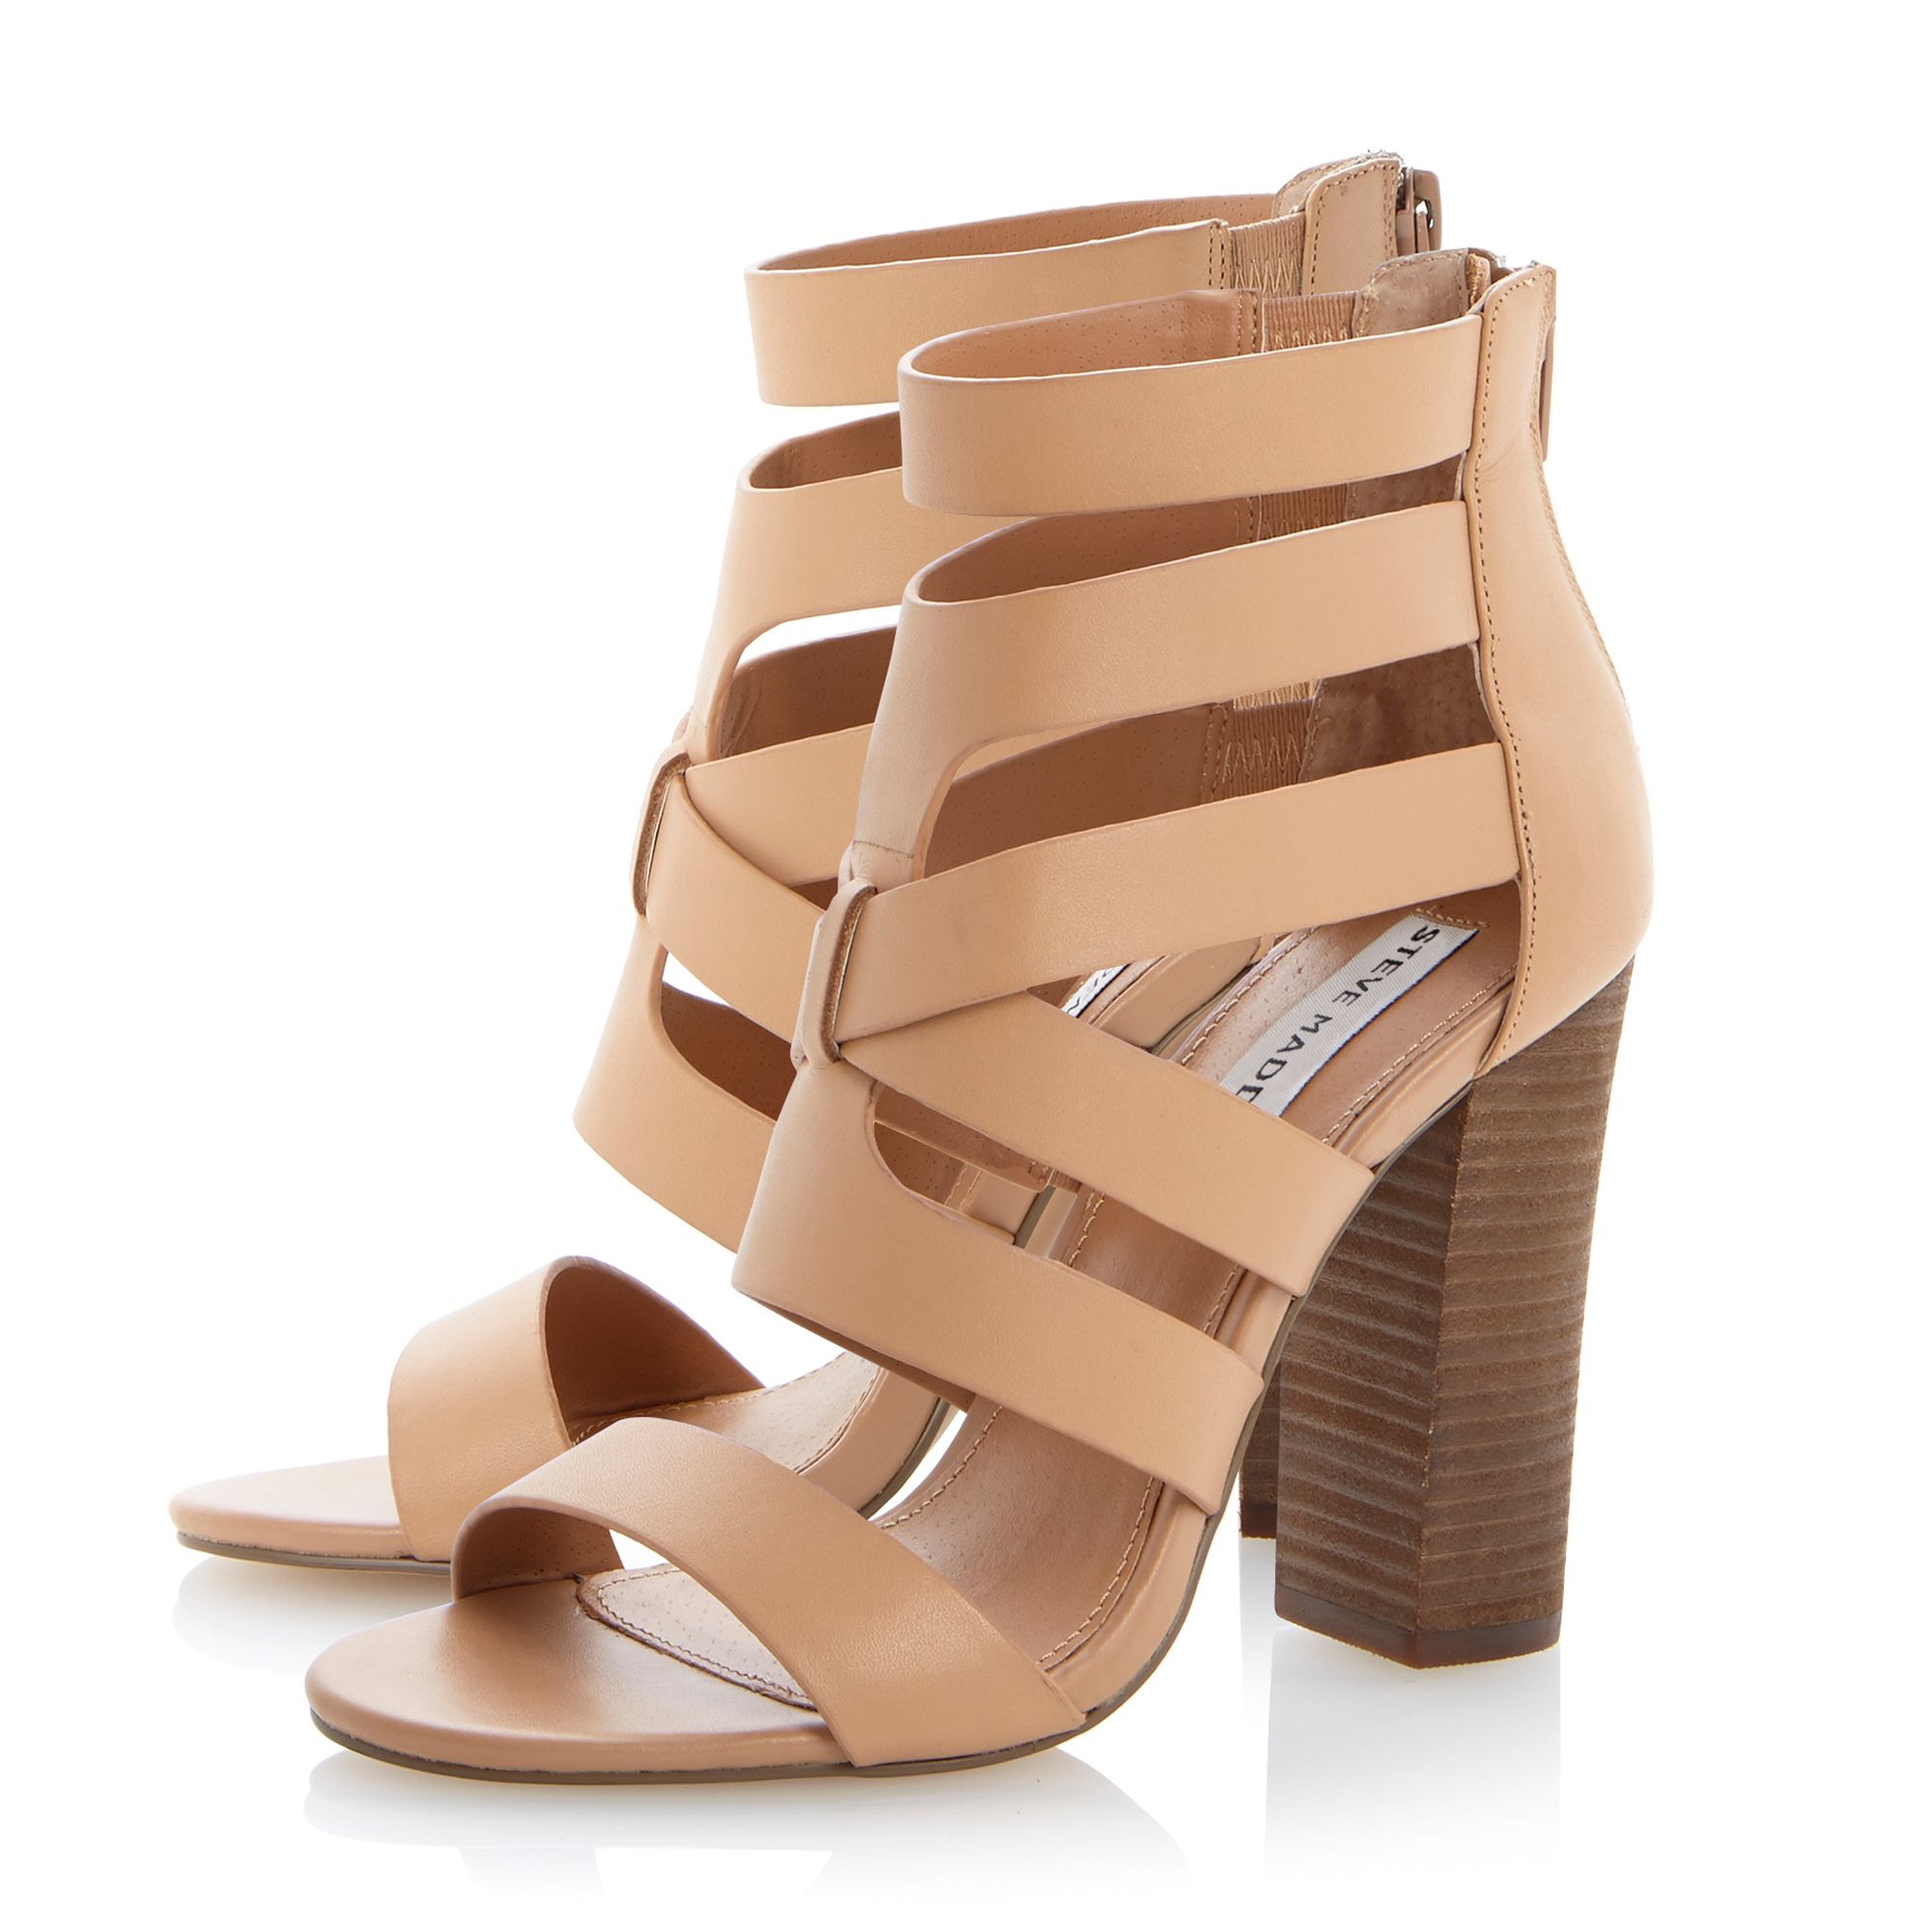 Cruizz strappy cut out sandals